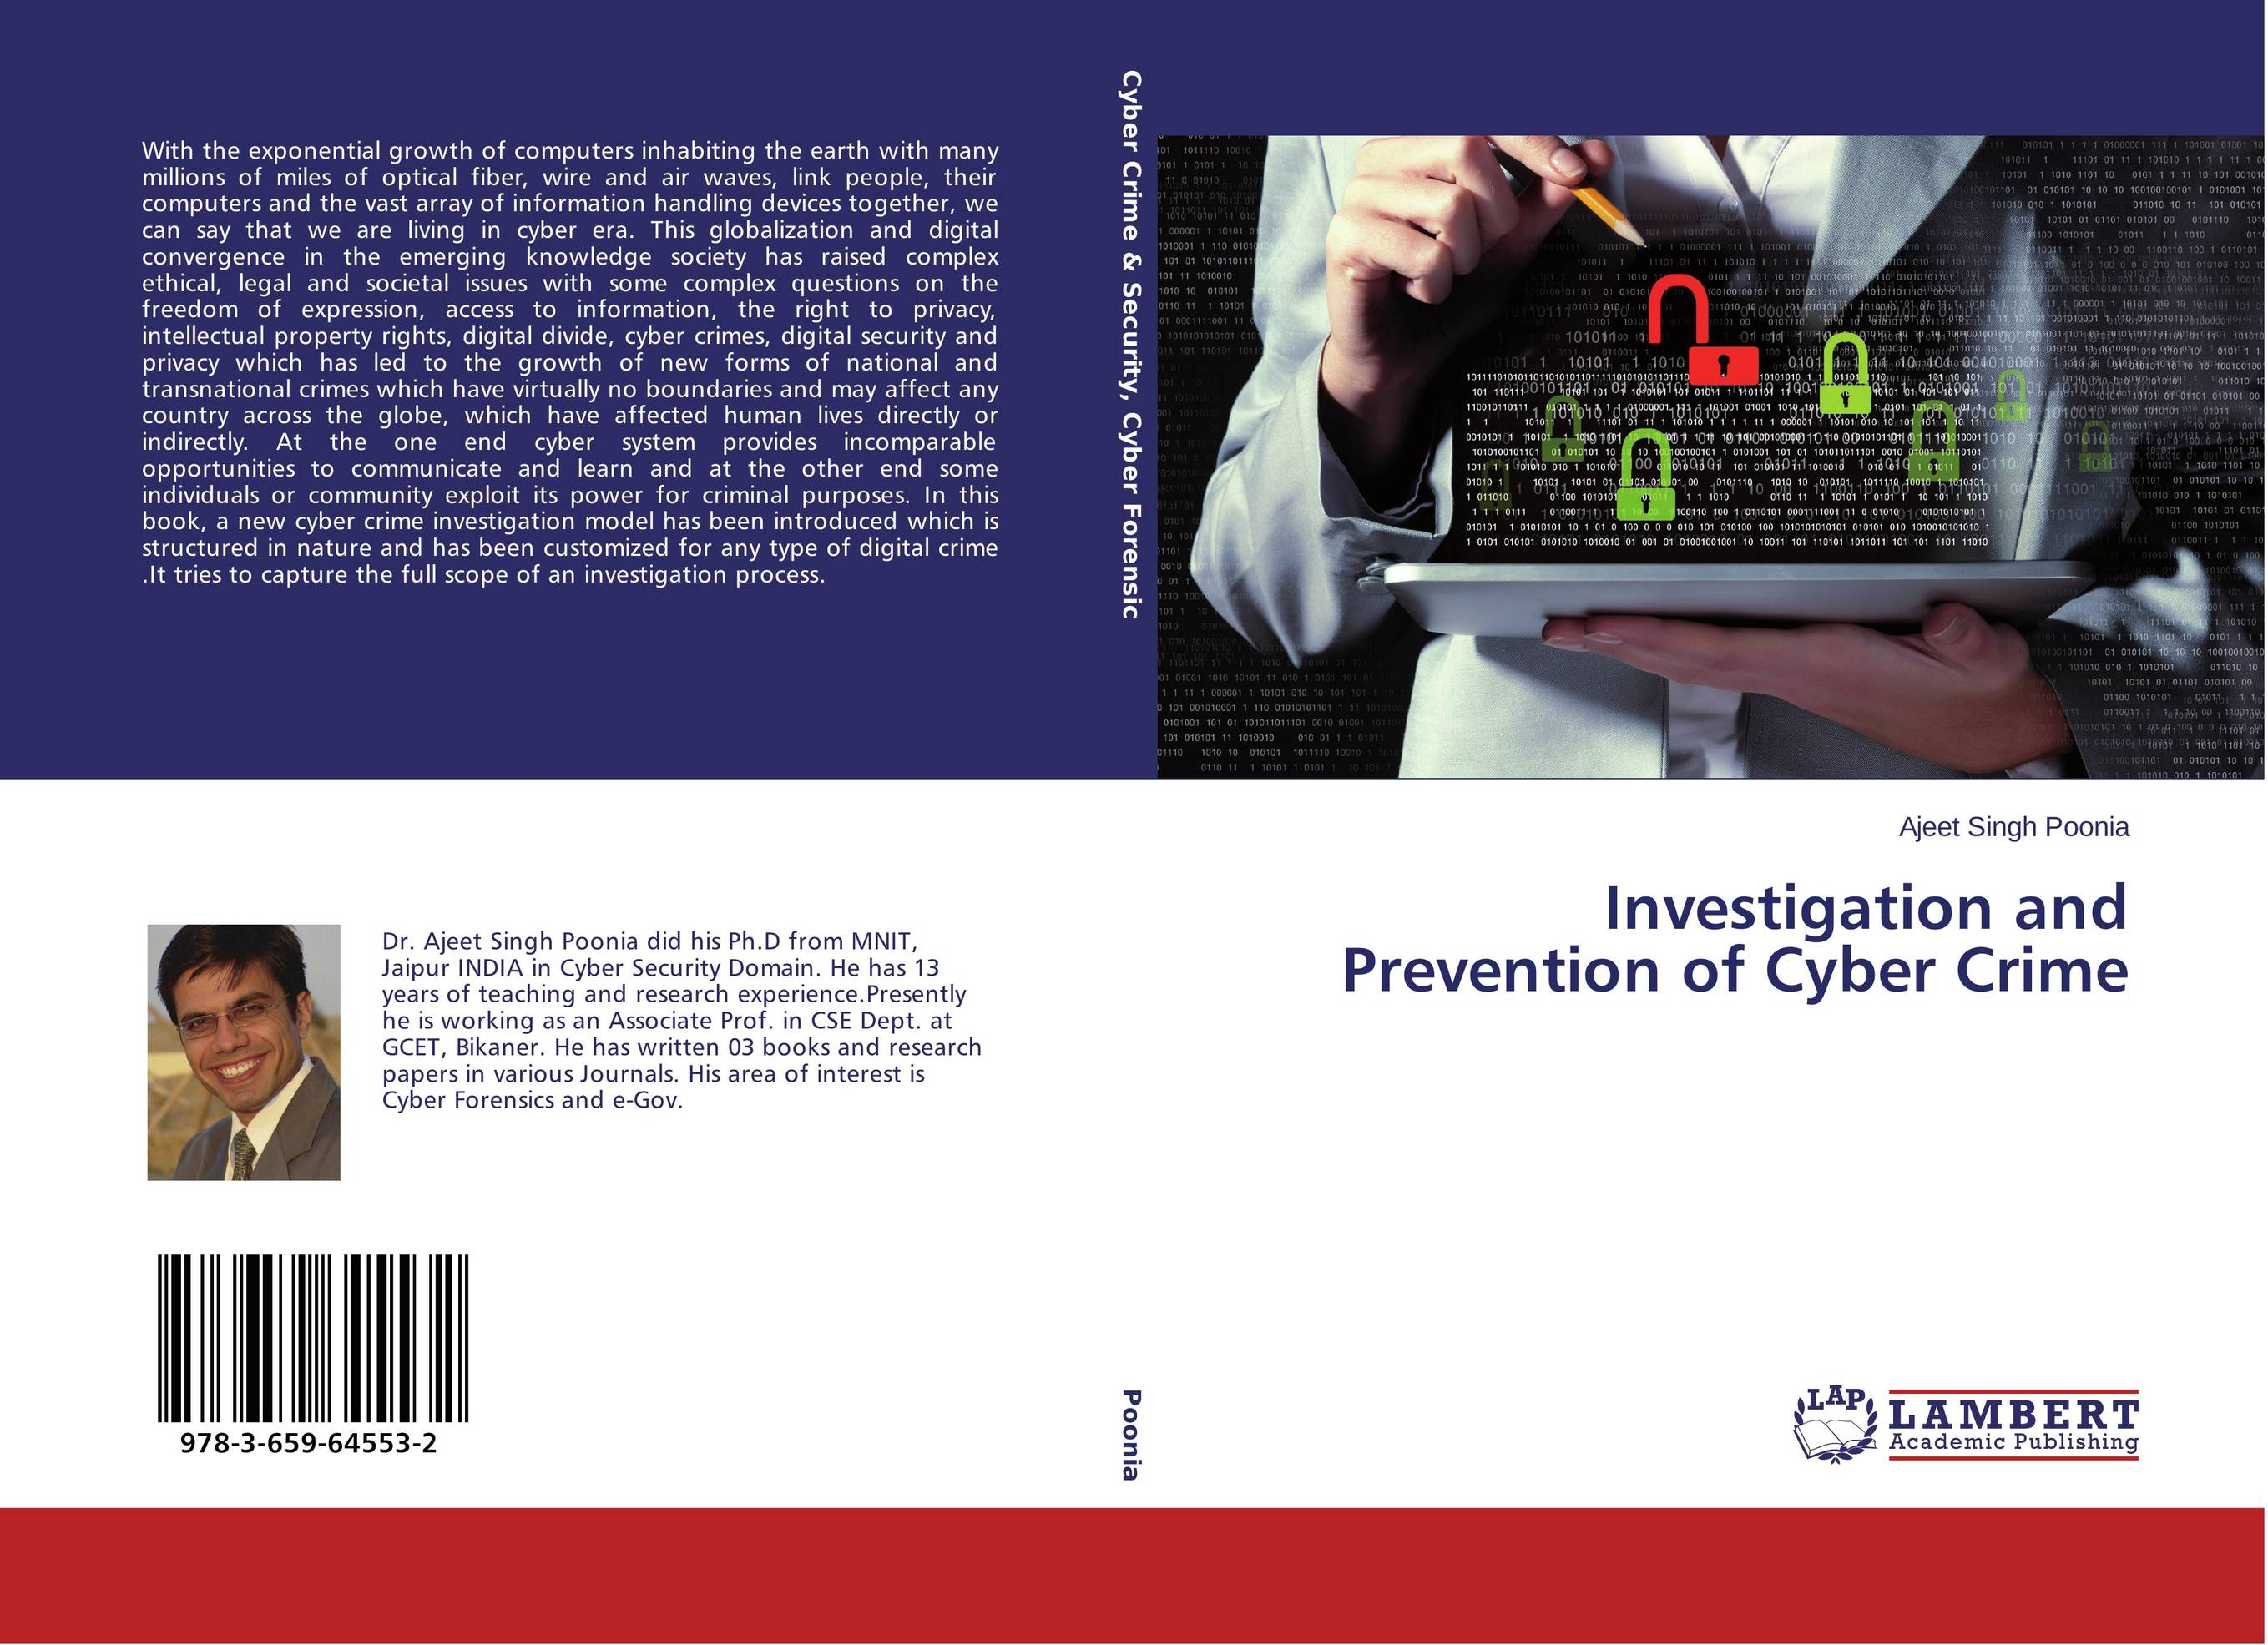 the effect and prevention of cyber crime essay You can order a custom essay, term paper, research paper, thesis or dissertation on crime and criminology topics at our professional custom essay writing service which provides students with custom research papers written by highly qualified academic writers high quality and no plagiarism guarantee.